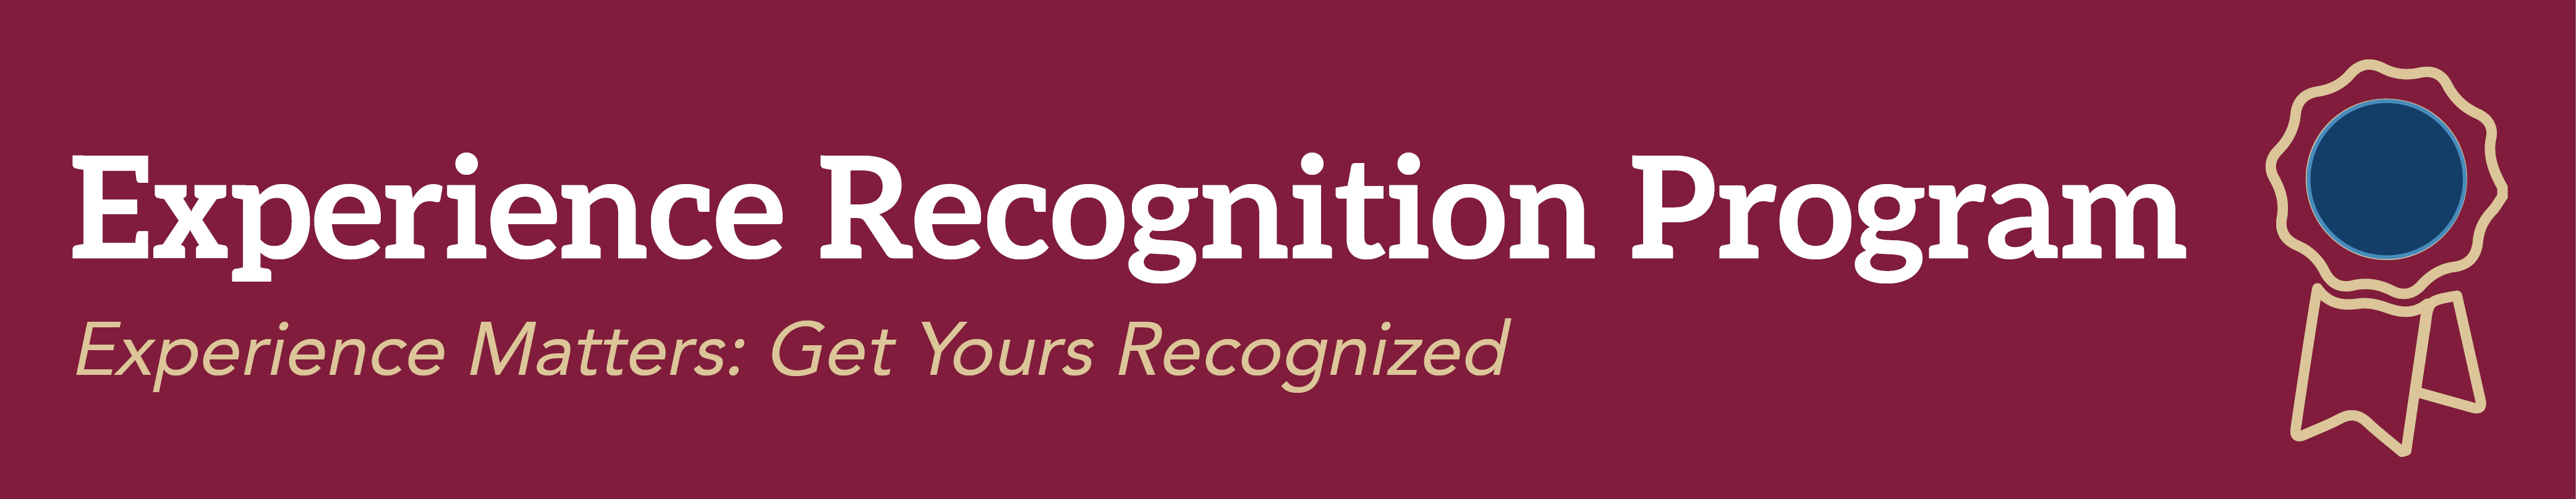 Experience Recognition Program